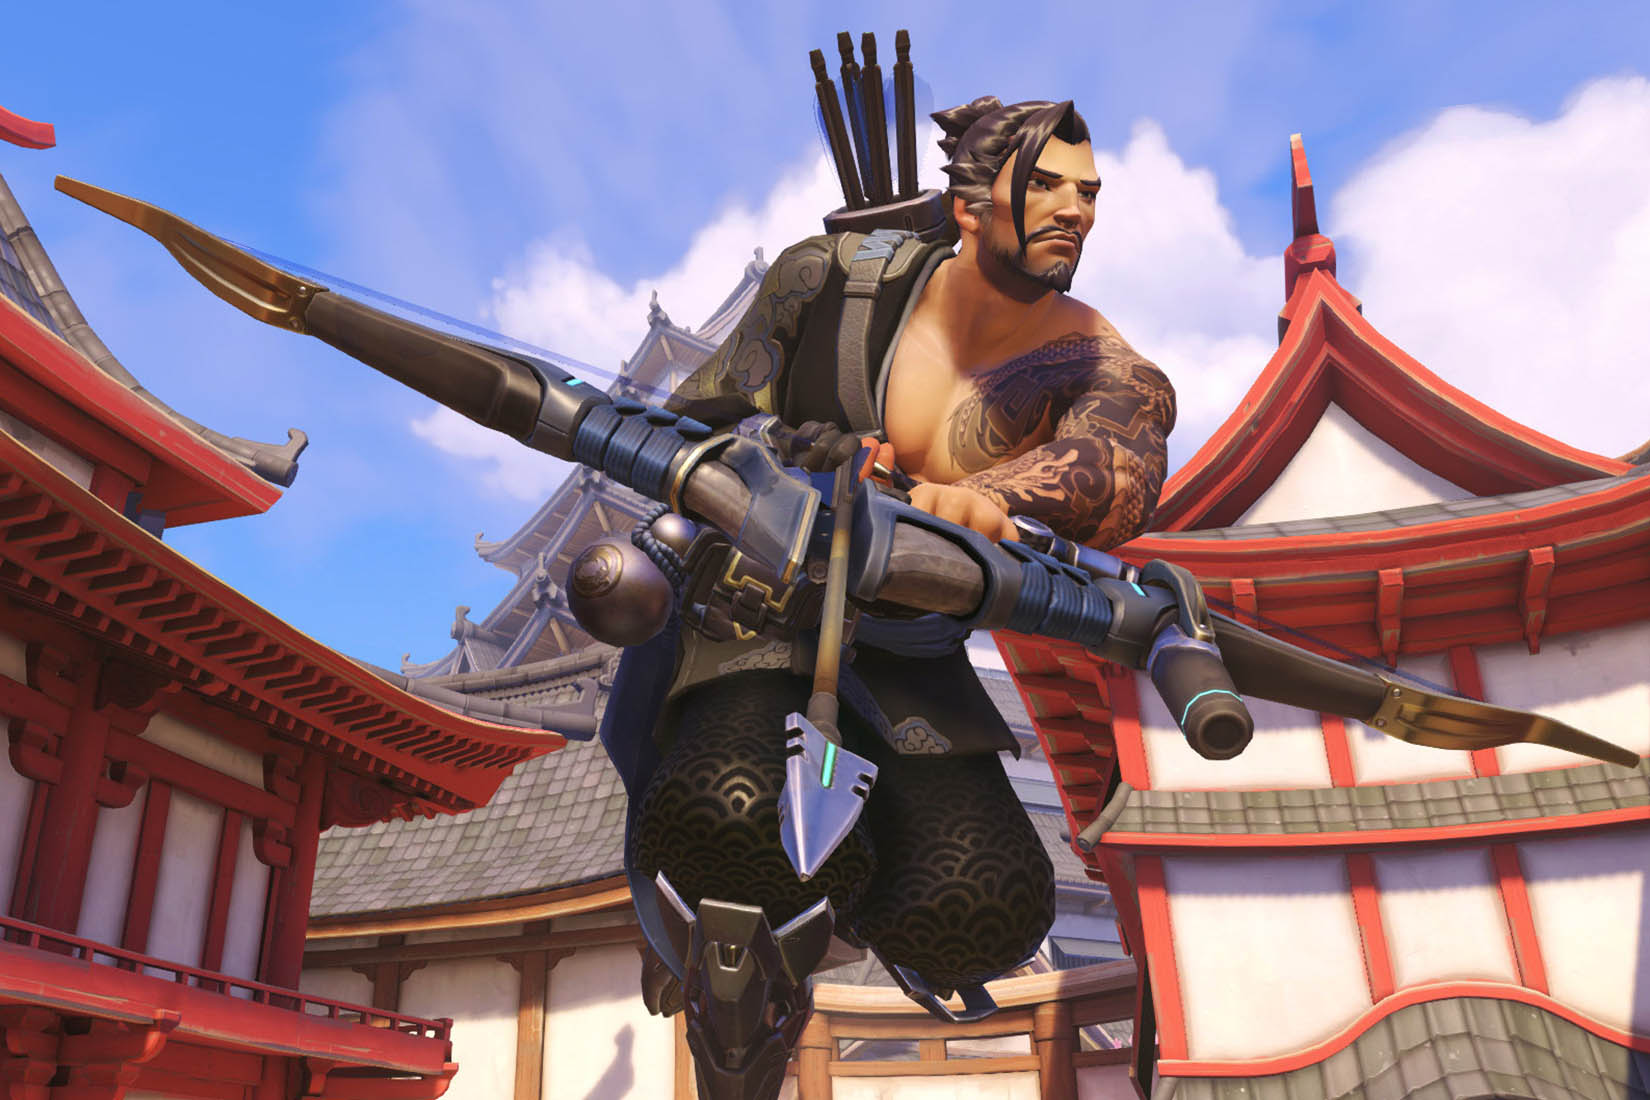 It Looks Like A New Overwatch Hero Is On The Way